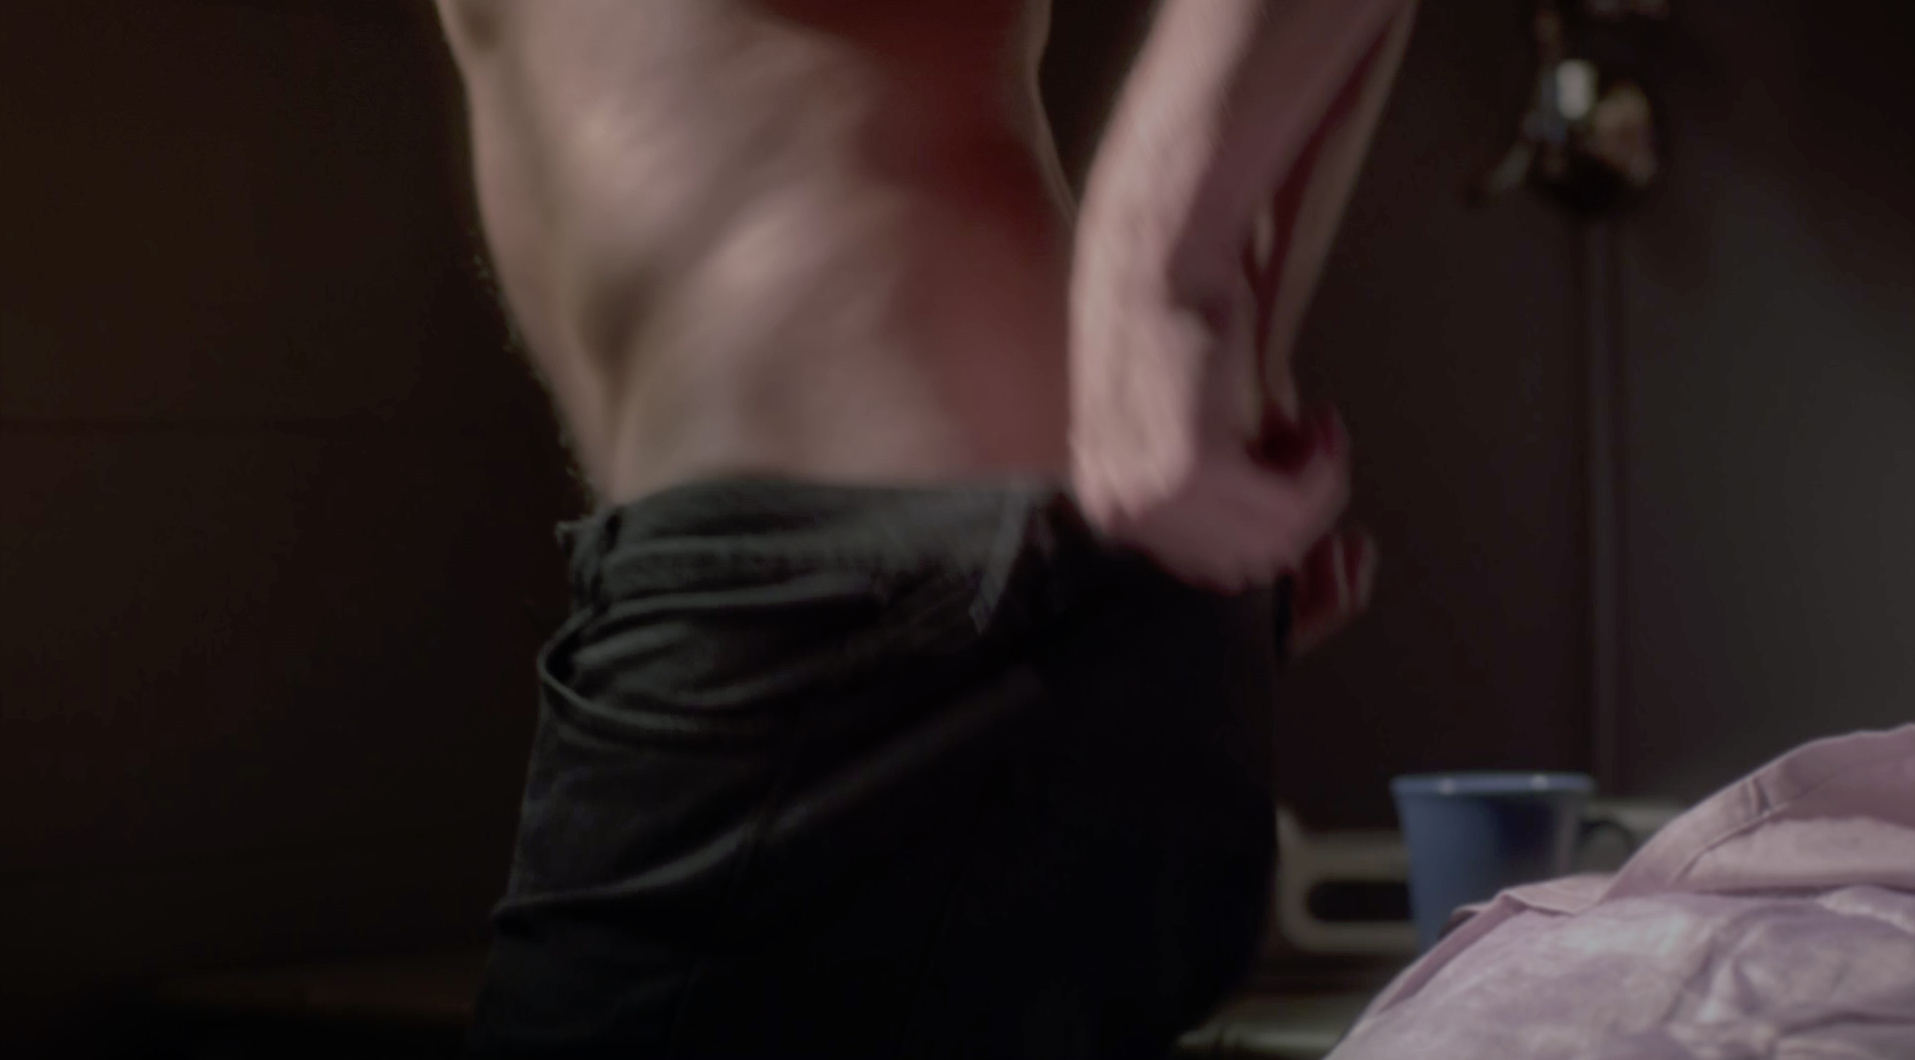 Midway through s06e20, Caleb gets dressed after some Spaleb sex. He does not appear to be wearing underwear.